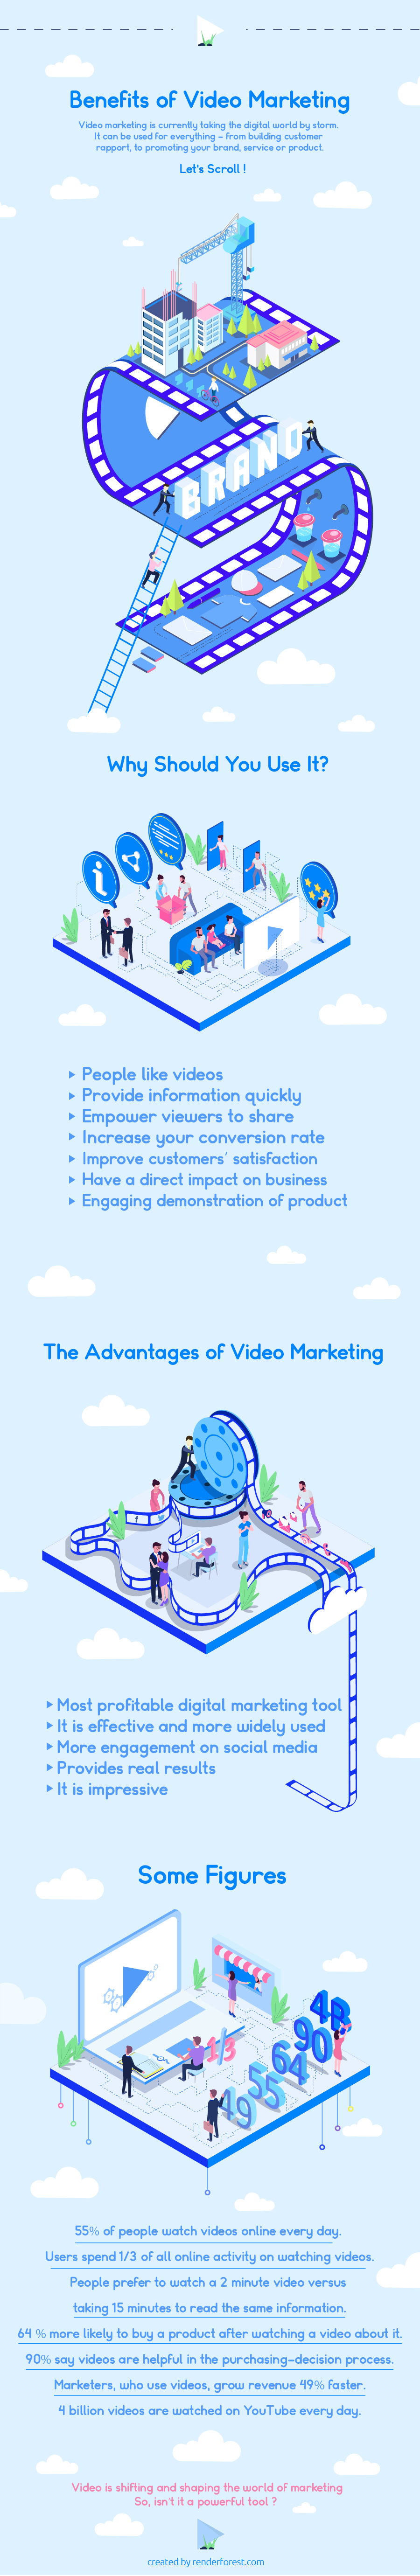 Video Marketing Benefits Infographic by RenderForest_Check out this infographic by RenderForest to learn how video marketing benefits customer rapport and the promotion of your brand, service or product!